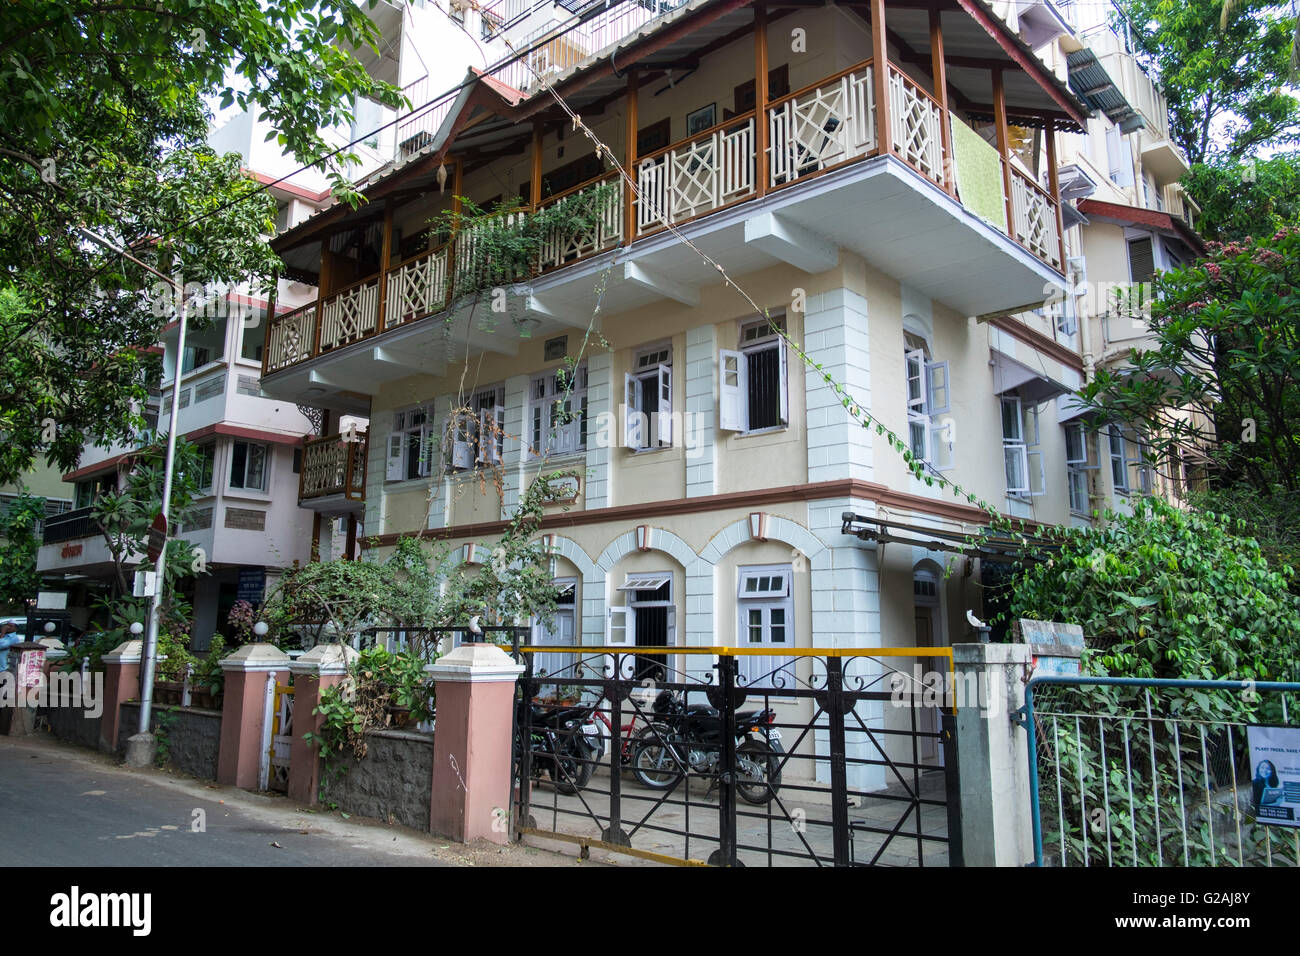 An Old Building In Pune Maharashtra India Stock Photo Alamy